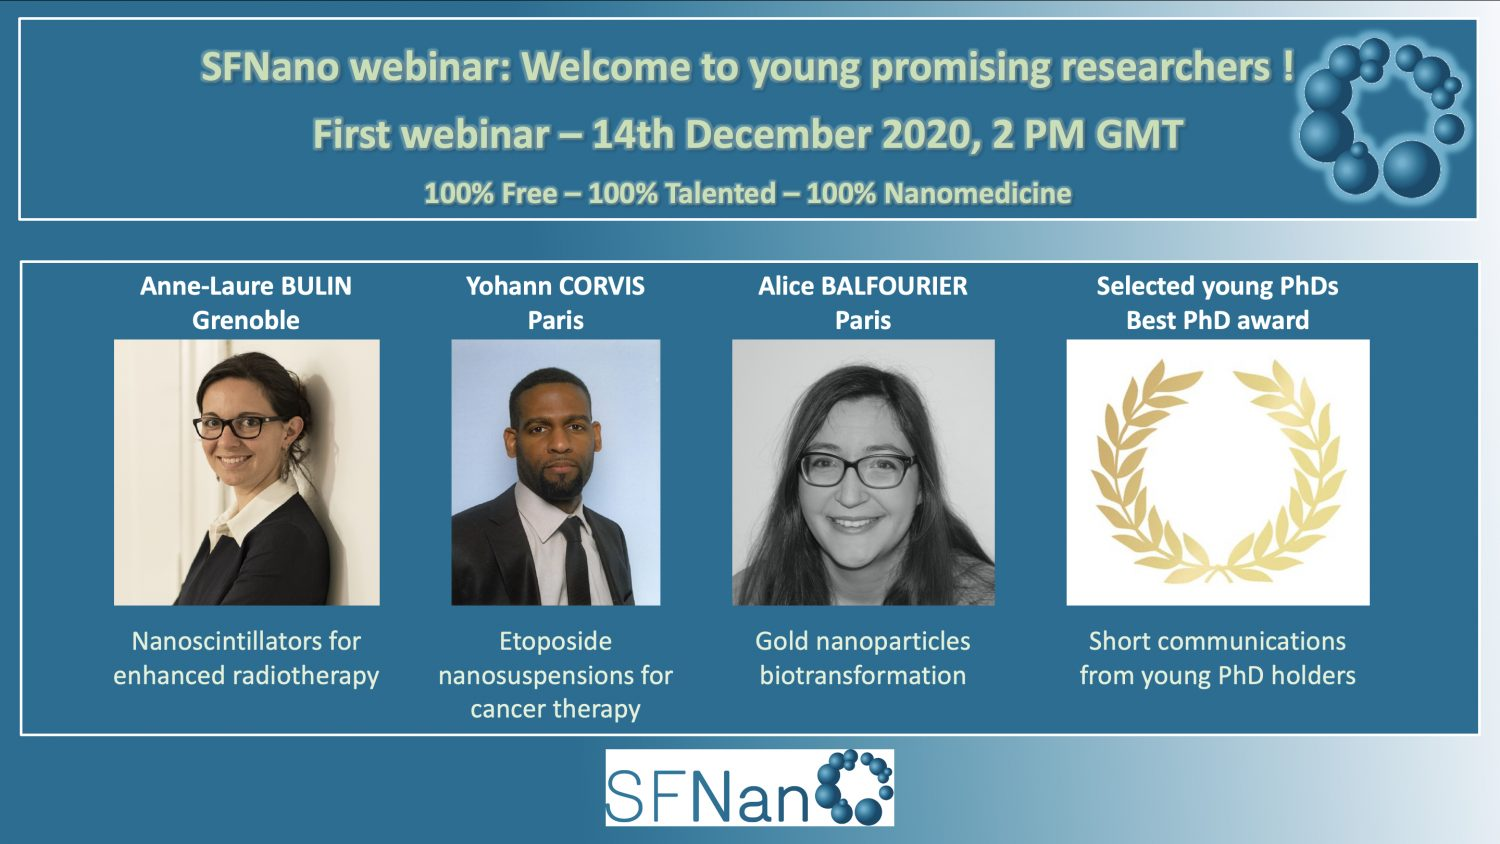 Webinar for young researchers organized by SFNano,  French Society for Nanomedicine